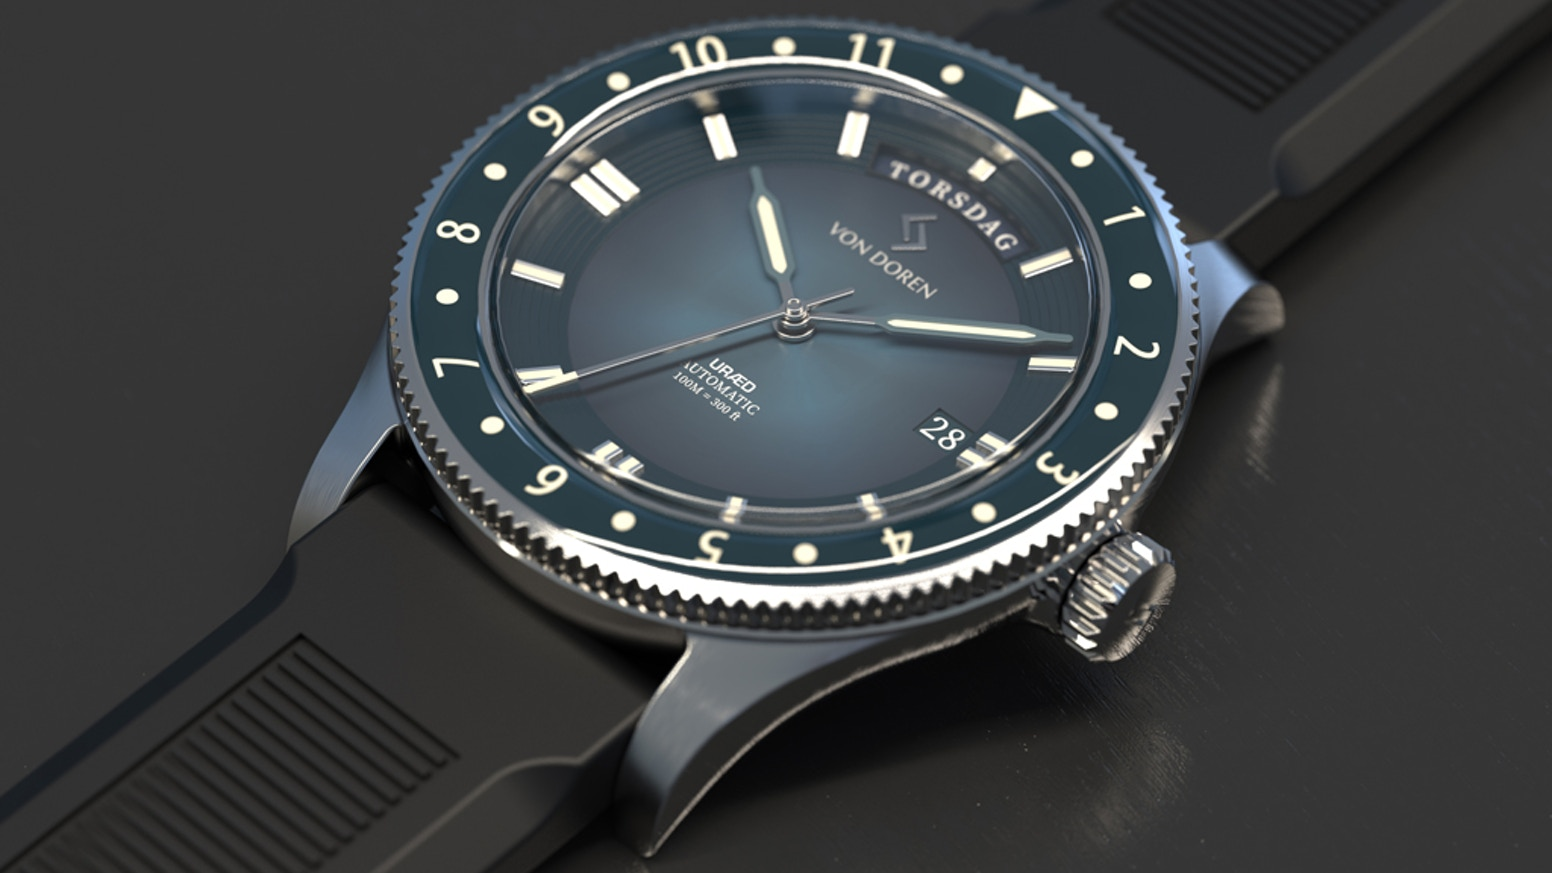 A truly unique Timepiece designed in Norway. In honor of the fearless crew aboard the lifeboat URÆD that crossed the Atlantic Ocean